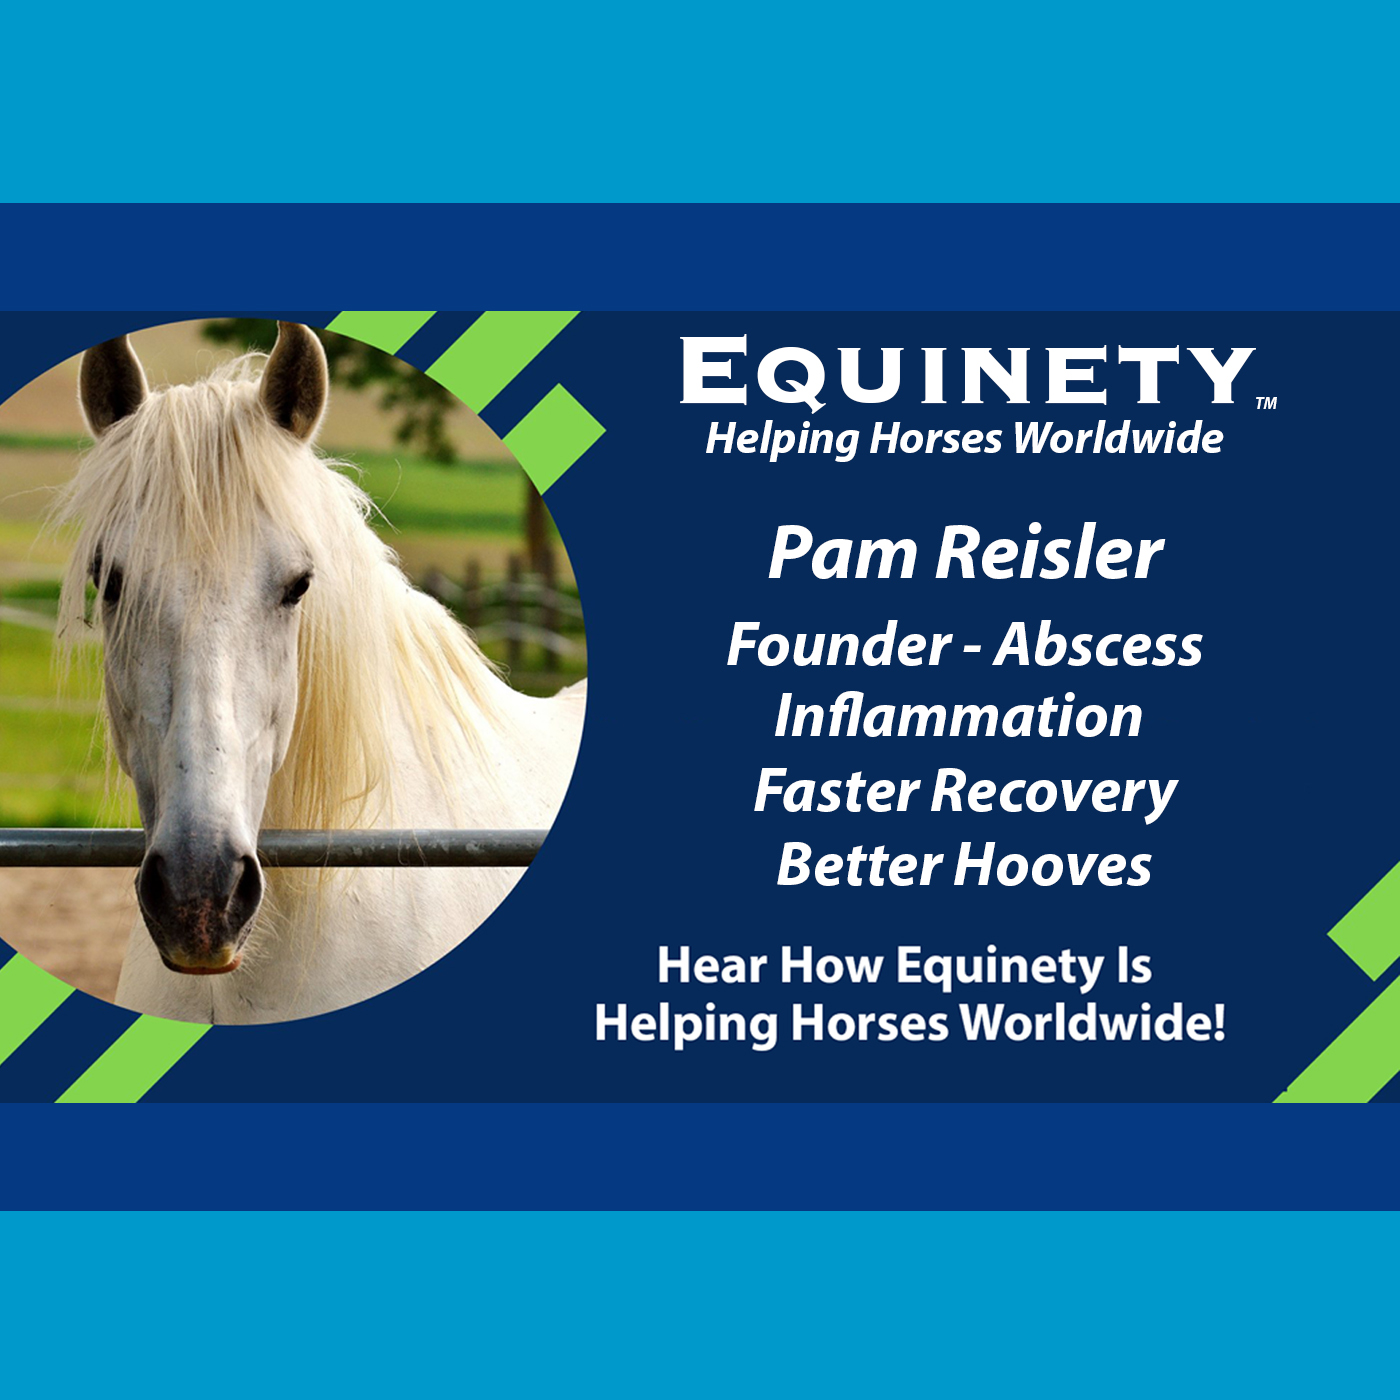 104 – Pam Reisler – Inflammation – Foundered – Abscess - Cutting Horse – Full Recovery-1